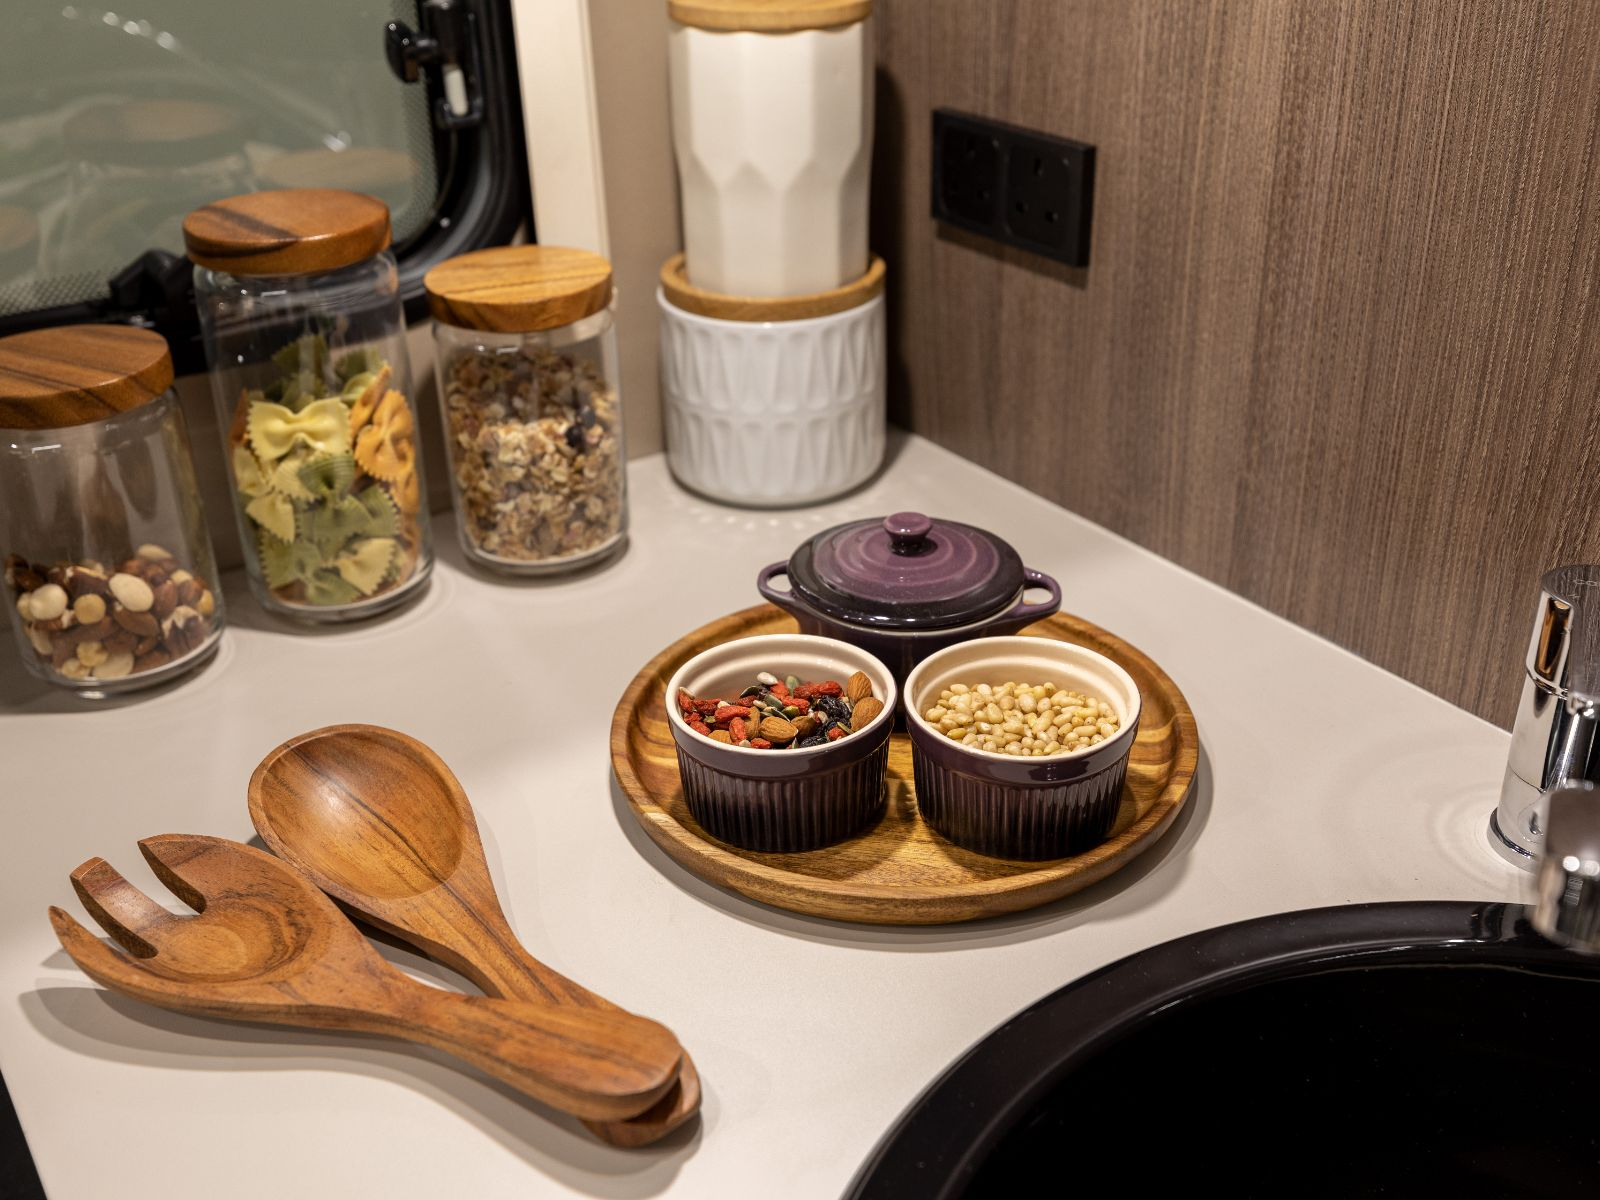 Assortment of food, containers and wooden utensils on kitchen counter top'